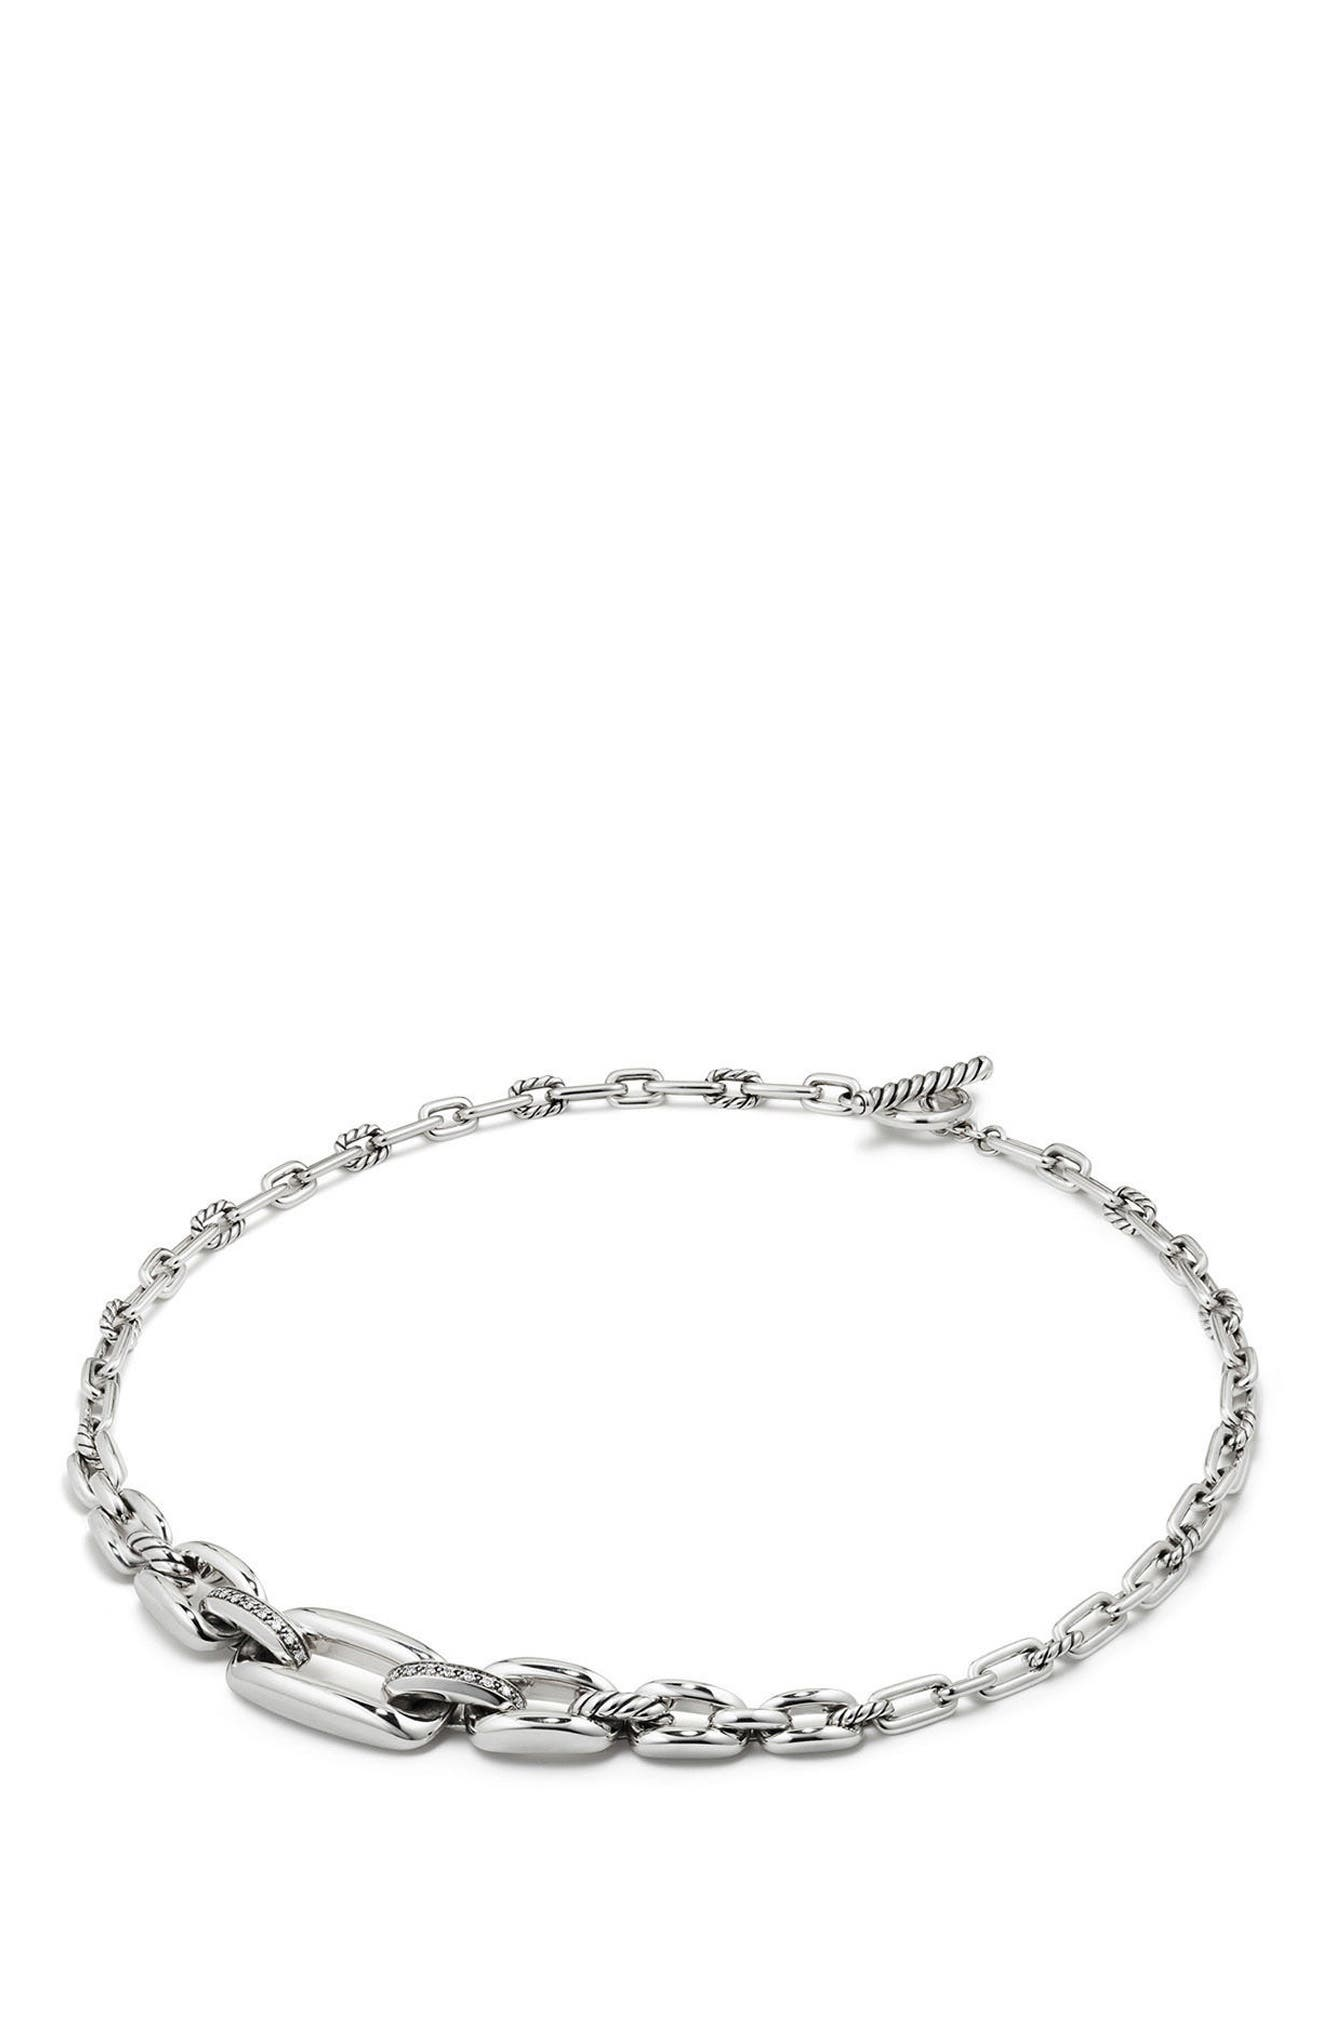 Wellesley Link Chain Station Necklace with Diamonds,                             Alternate thumbnail 2, color,                             Silver